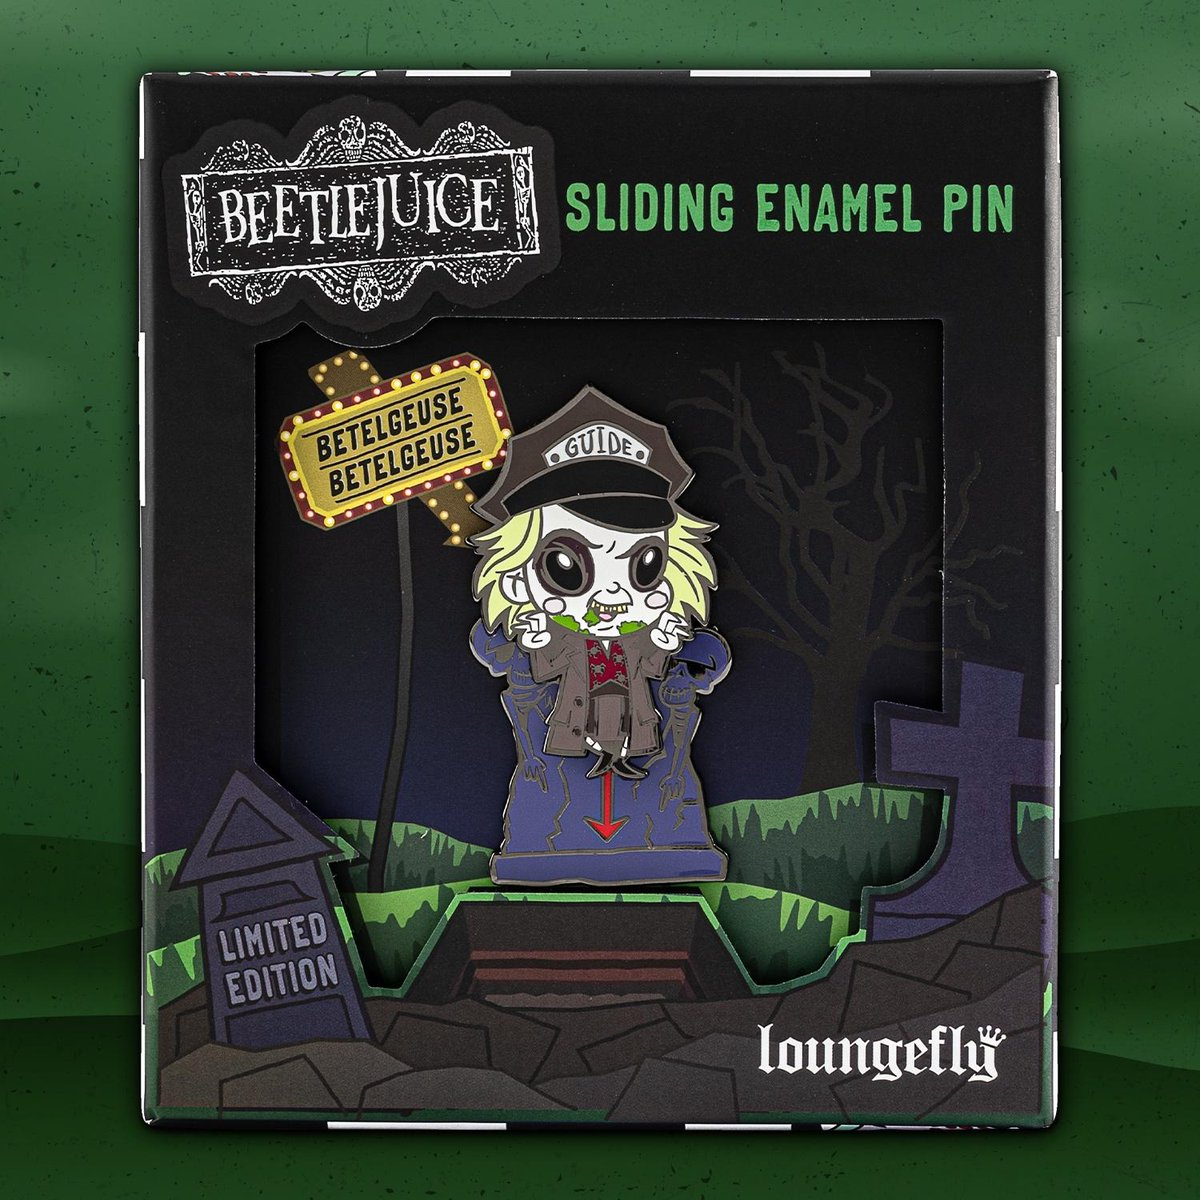 Our limited edition Beetlejuice pin has arrived! Shop now at bit.ly/3dqxqmA while supplies last! 🖤💚🖤 #PinCollector #Loungefly #Beetlejuice